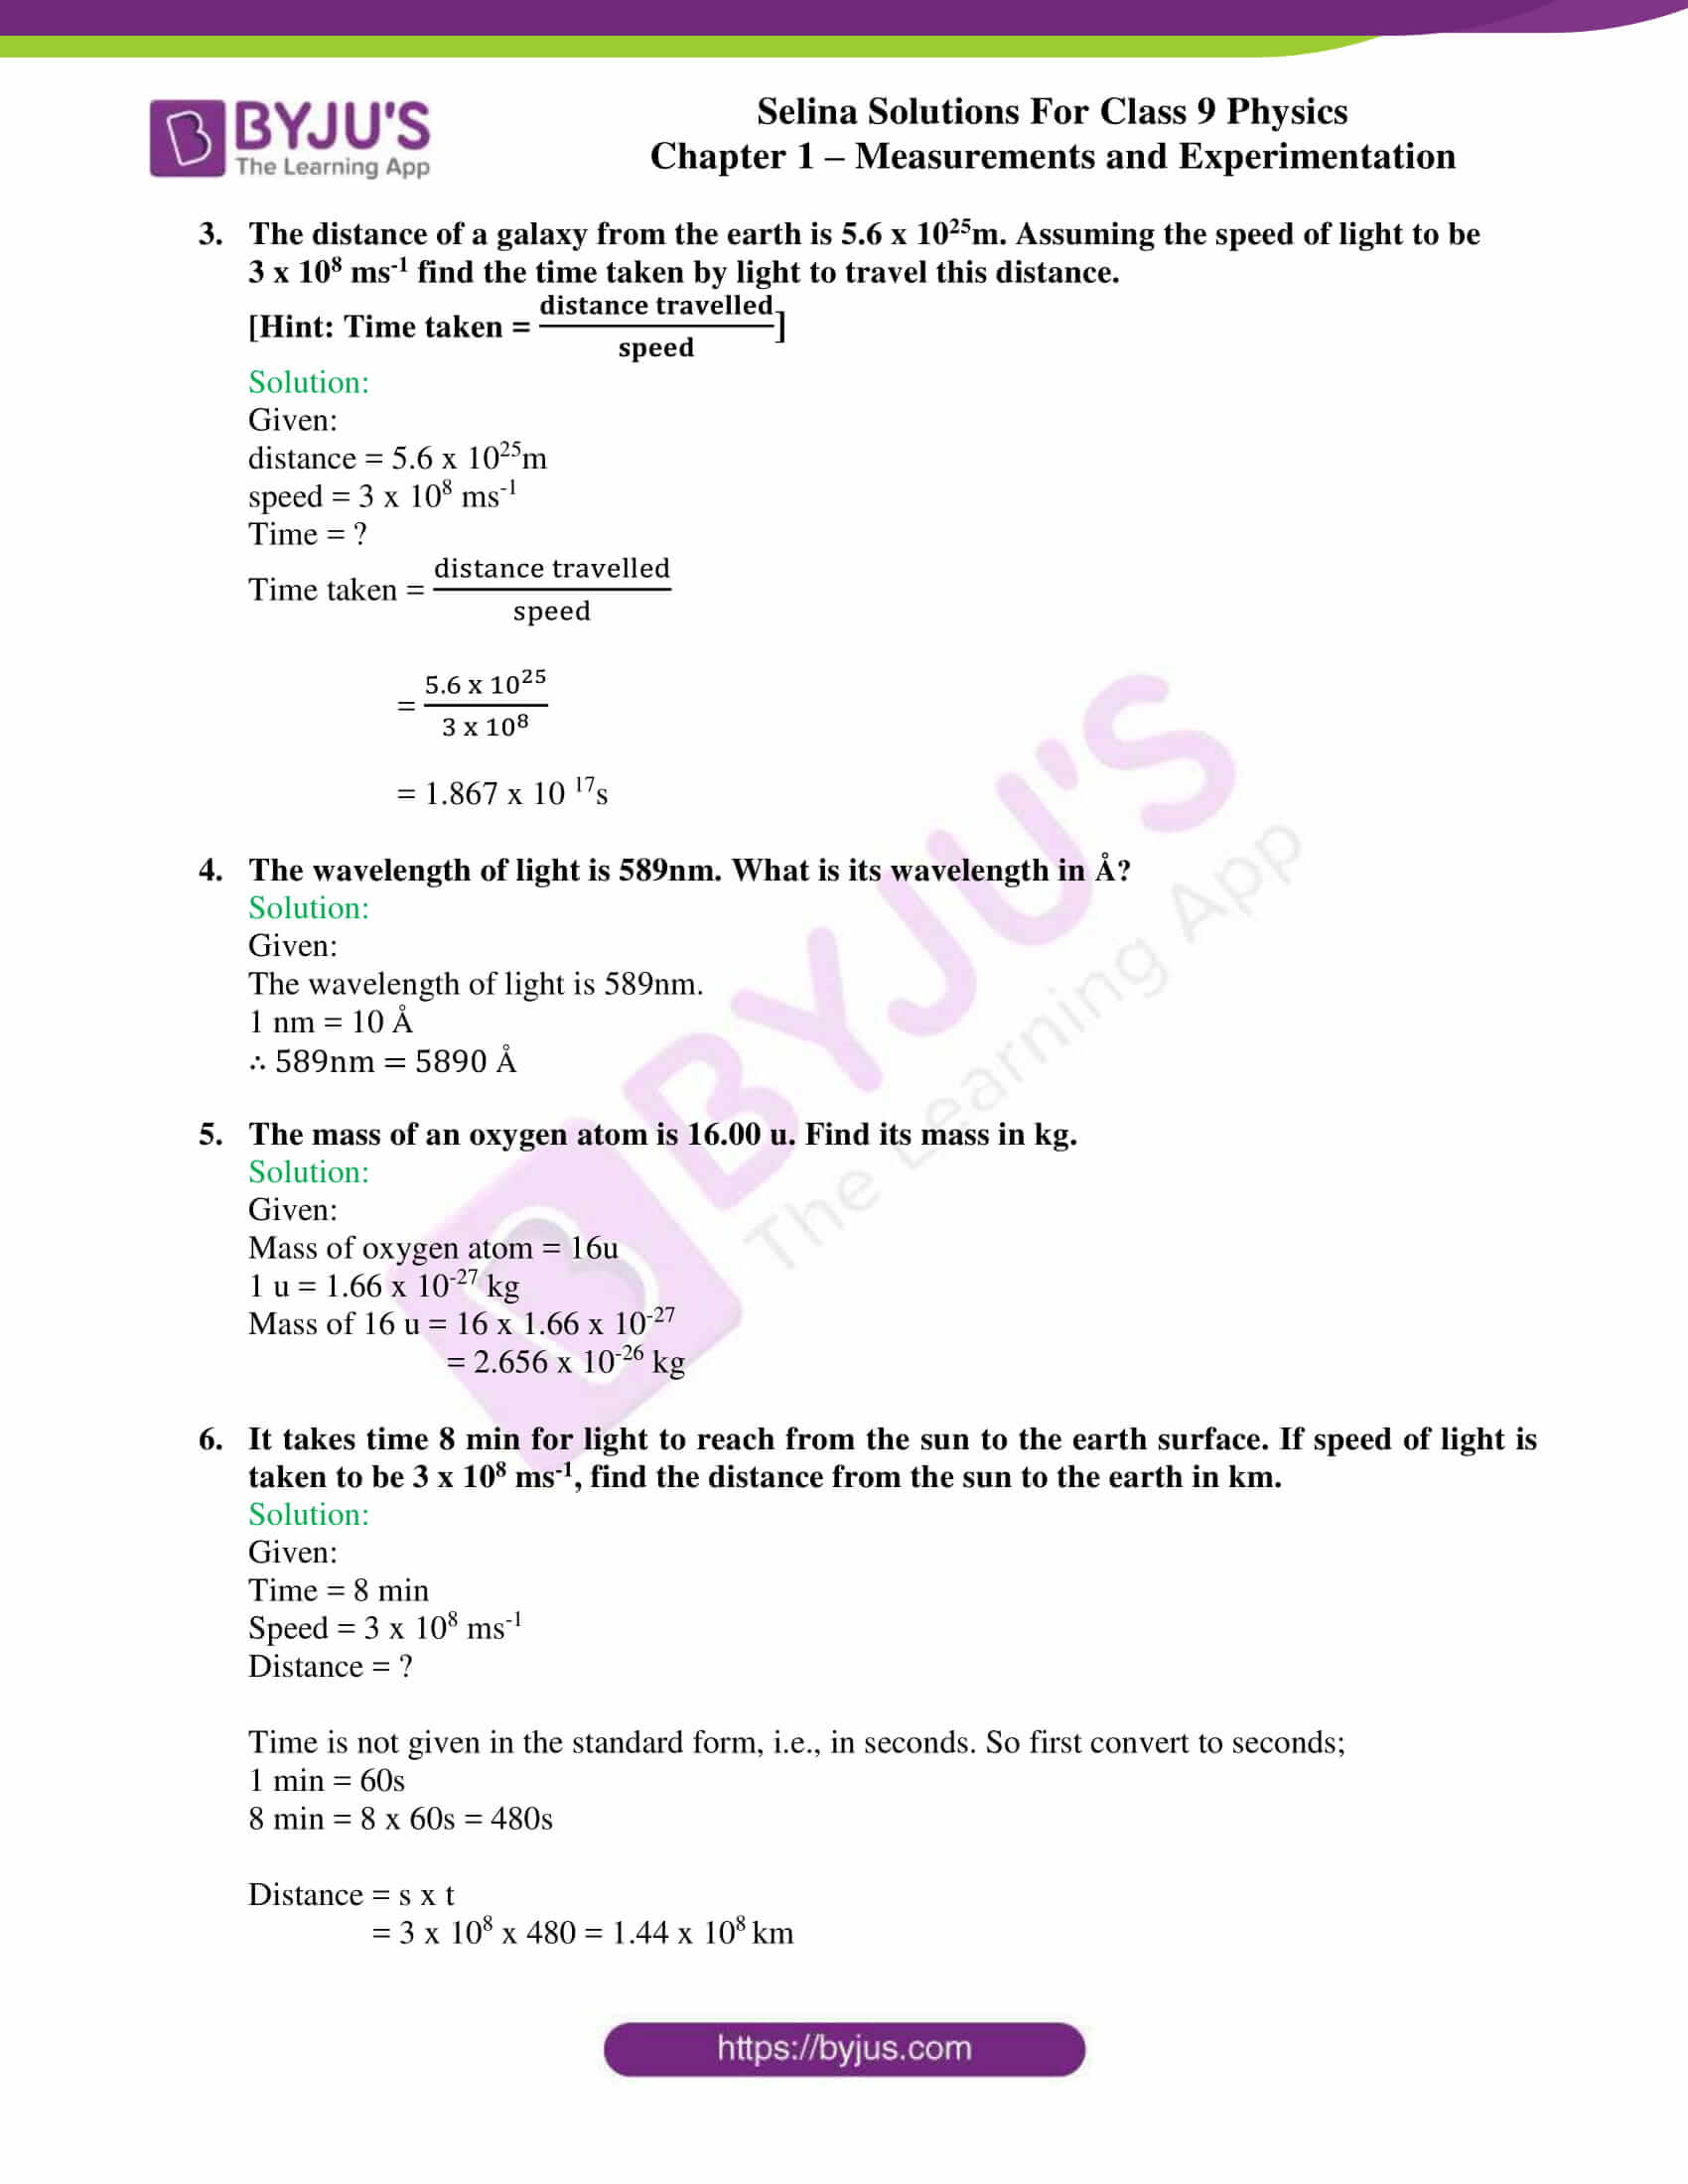 selina solutions class 9 physics chapter 1 Measurements and Experimentation part 08